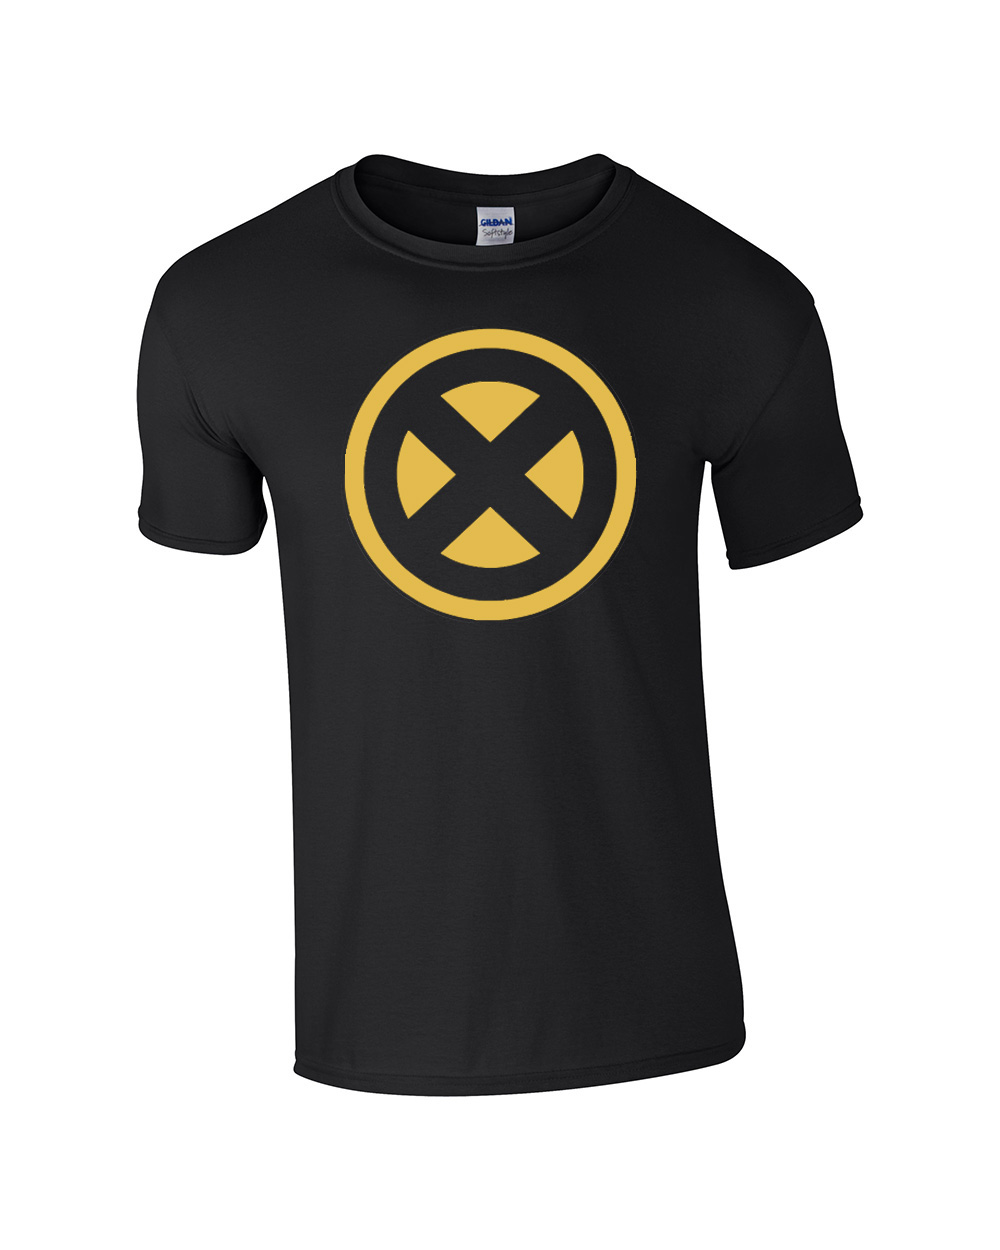 X Men Shirts T Shirts Design Concept